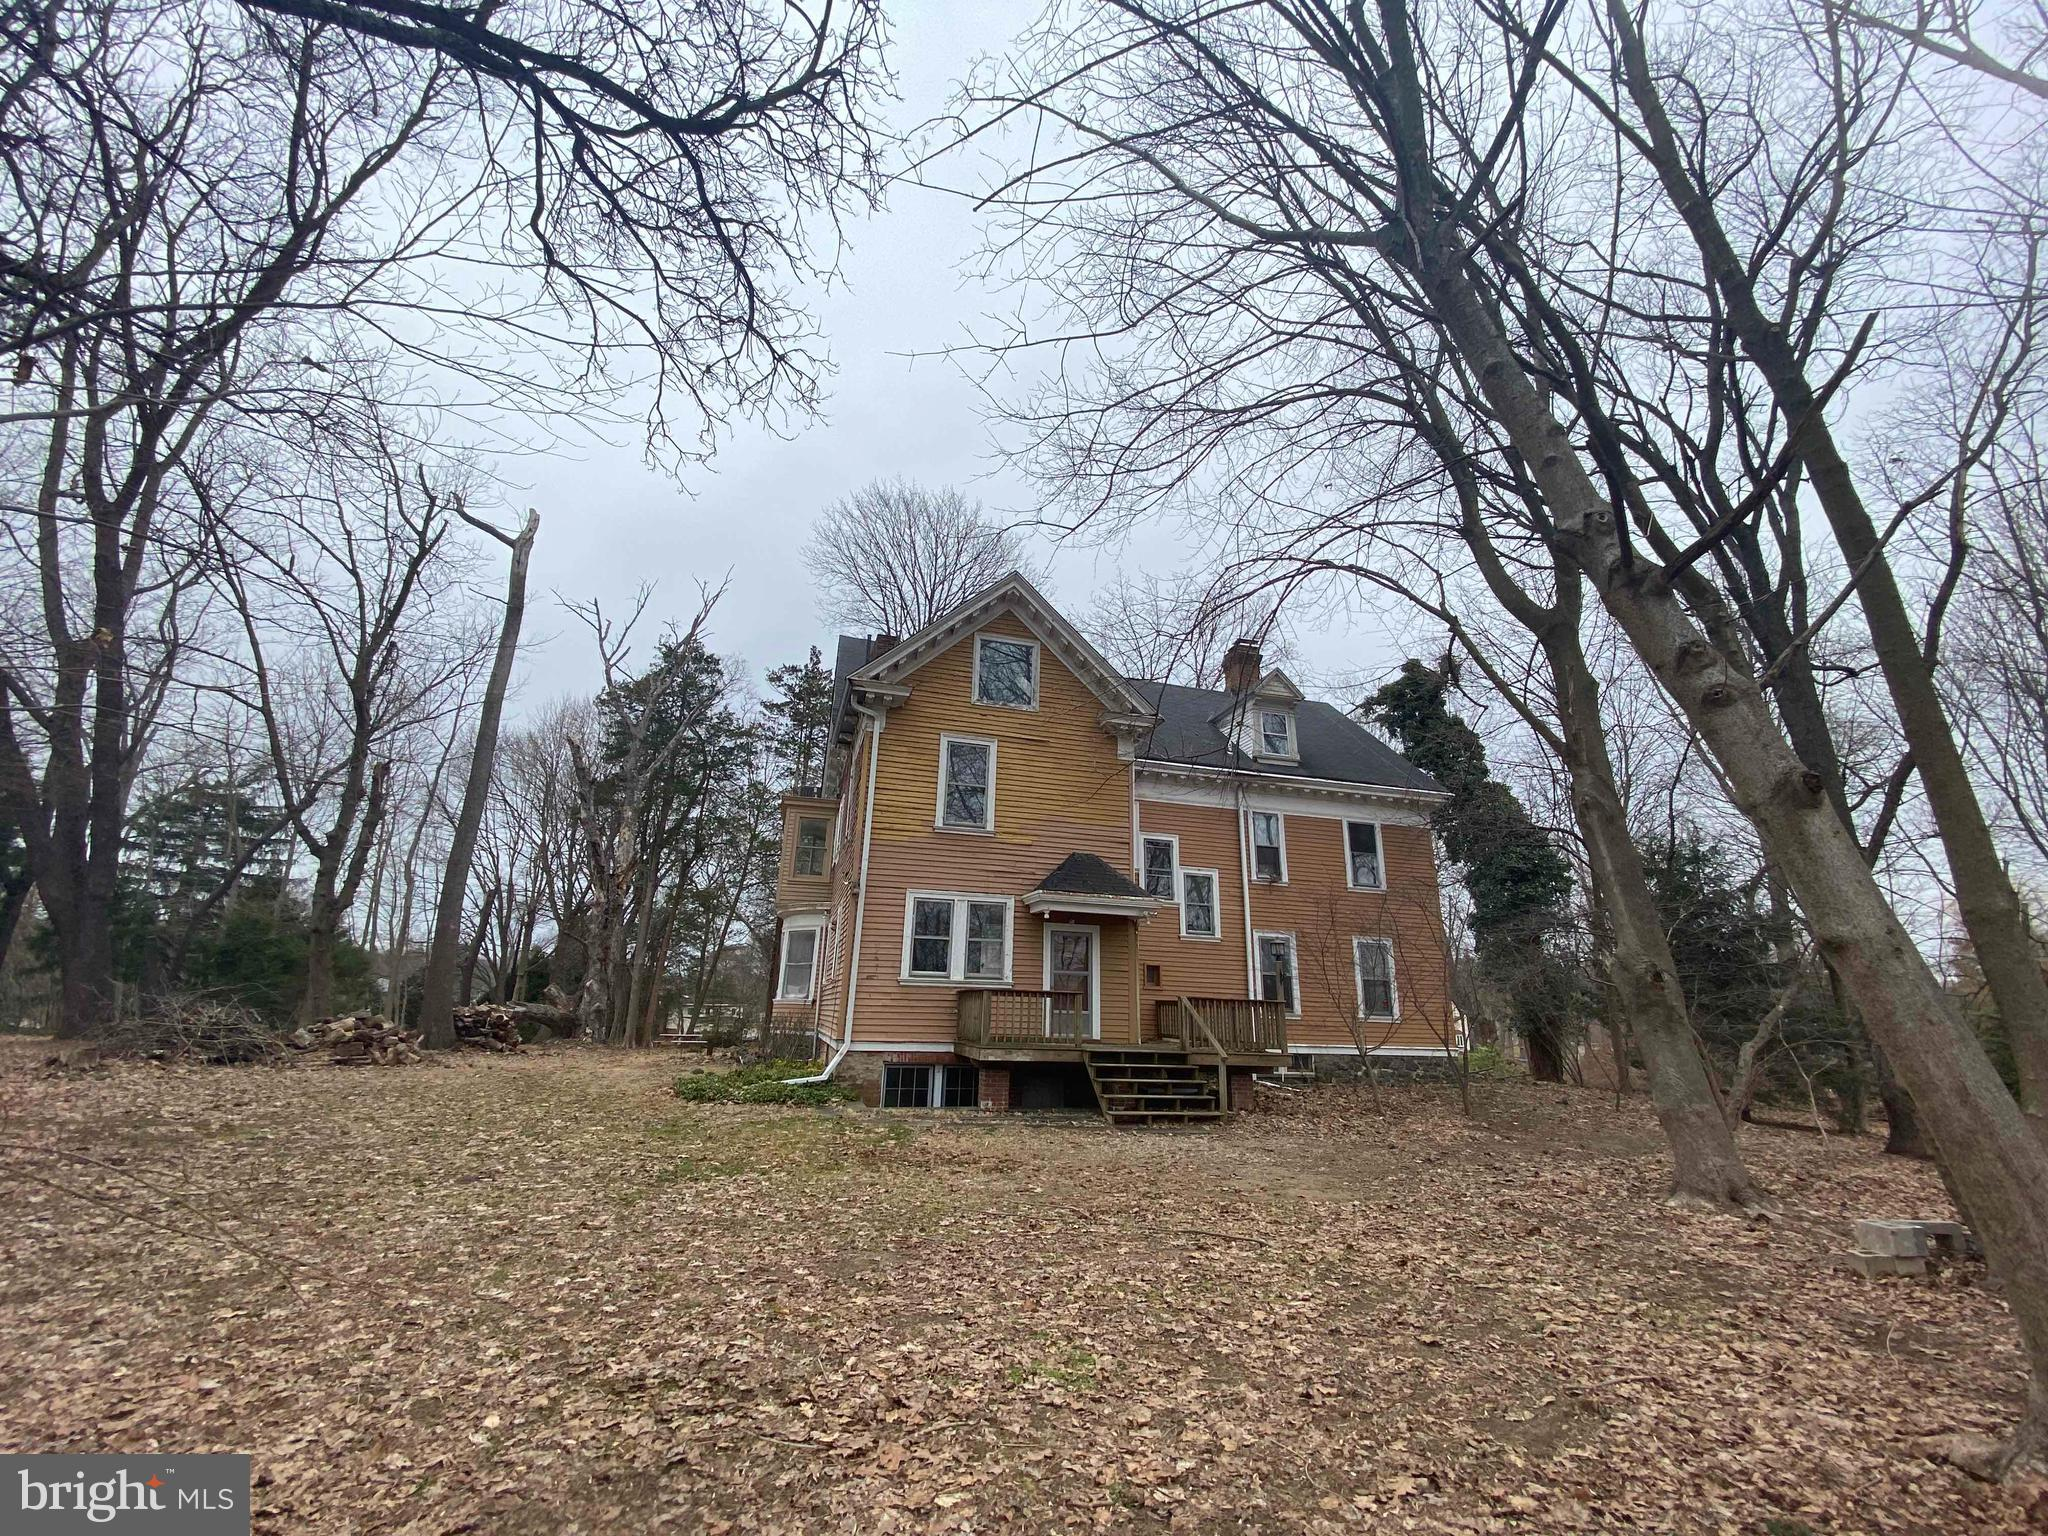 Improve to Own or Flip this large home on 3.07 acres in Prime location.